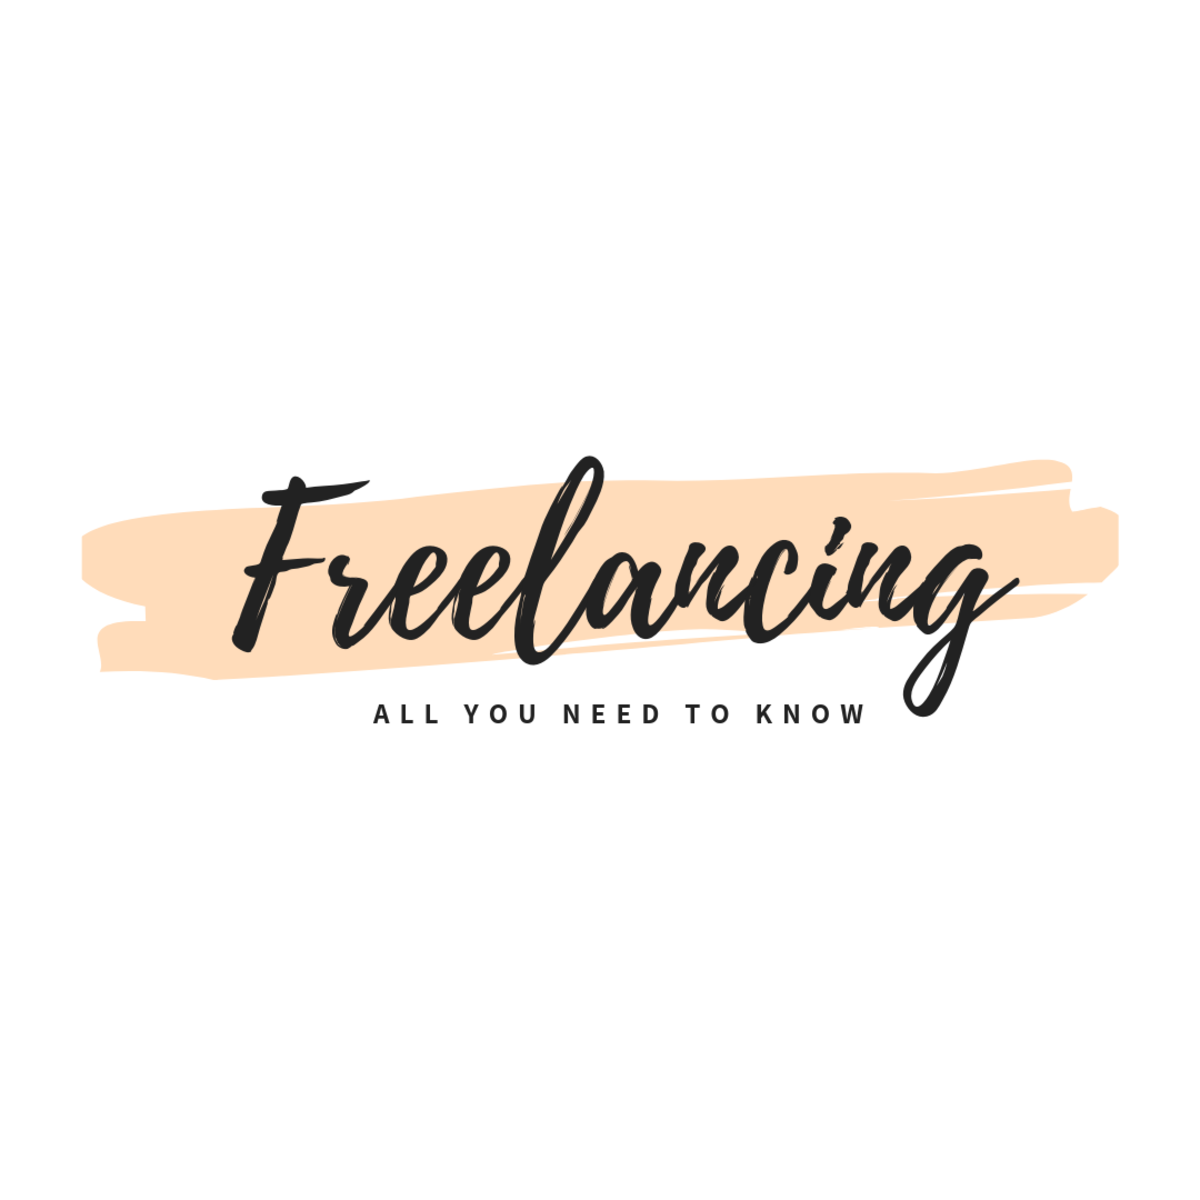 what-is-freelancing-all-you-need-to-know-to-get-started